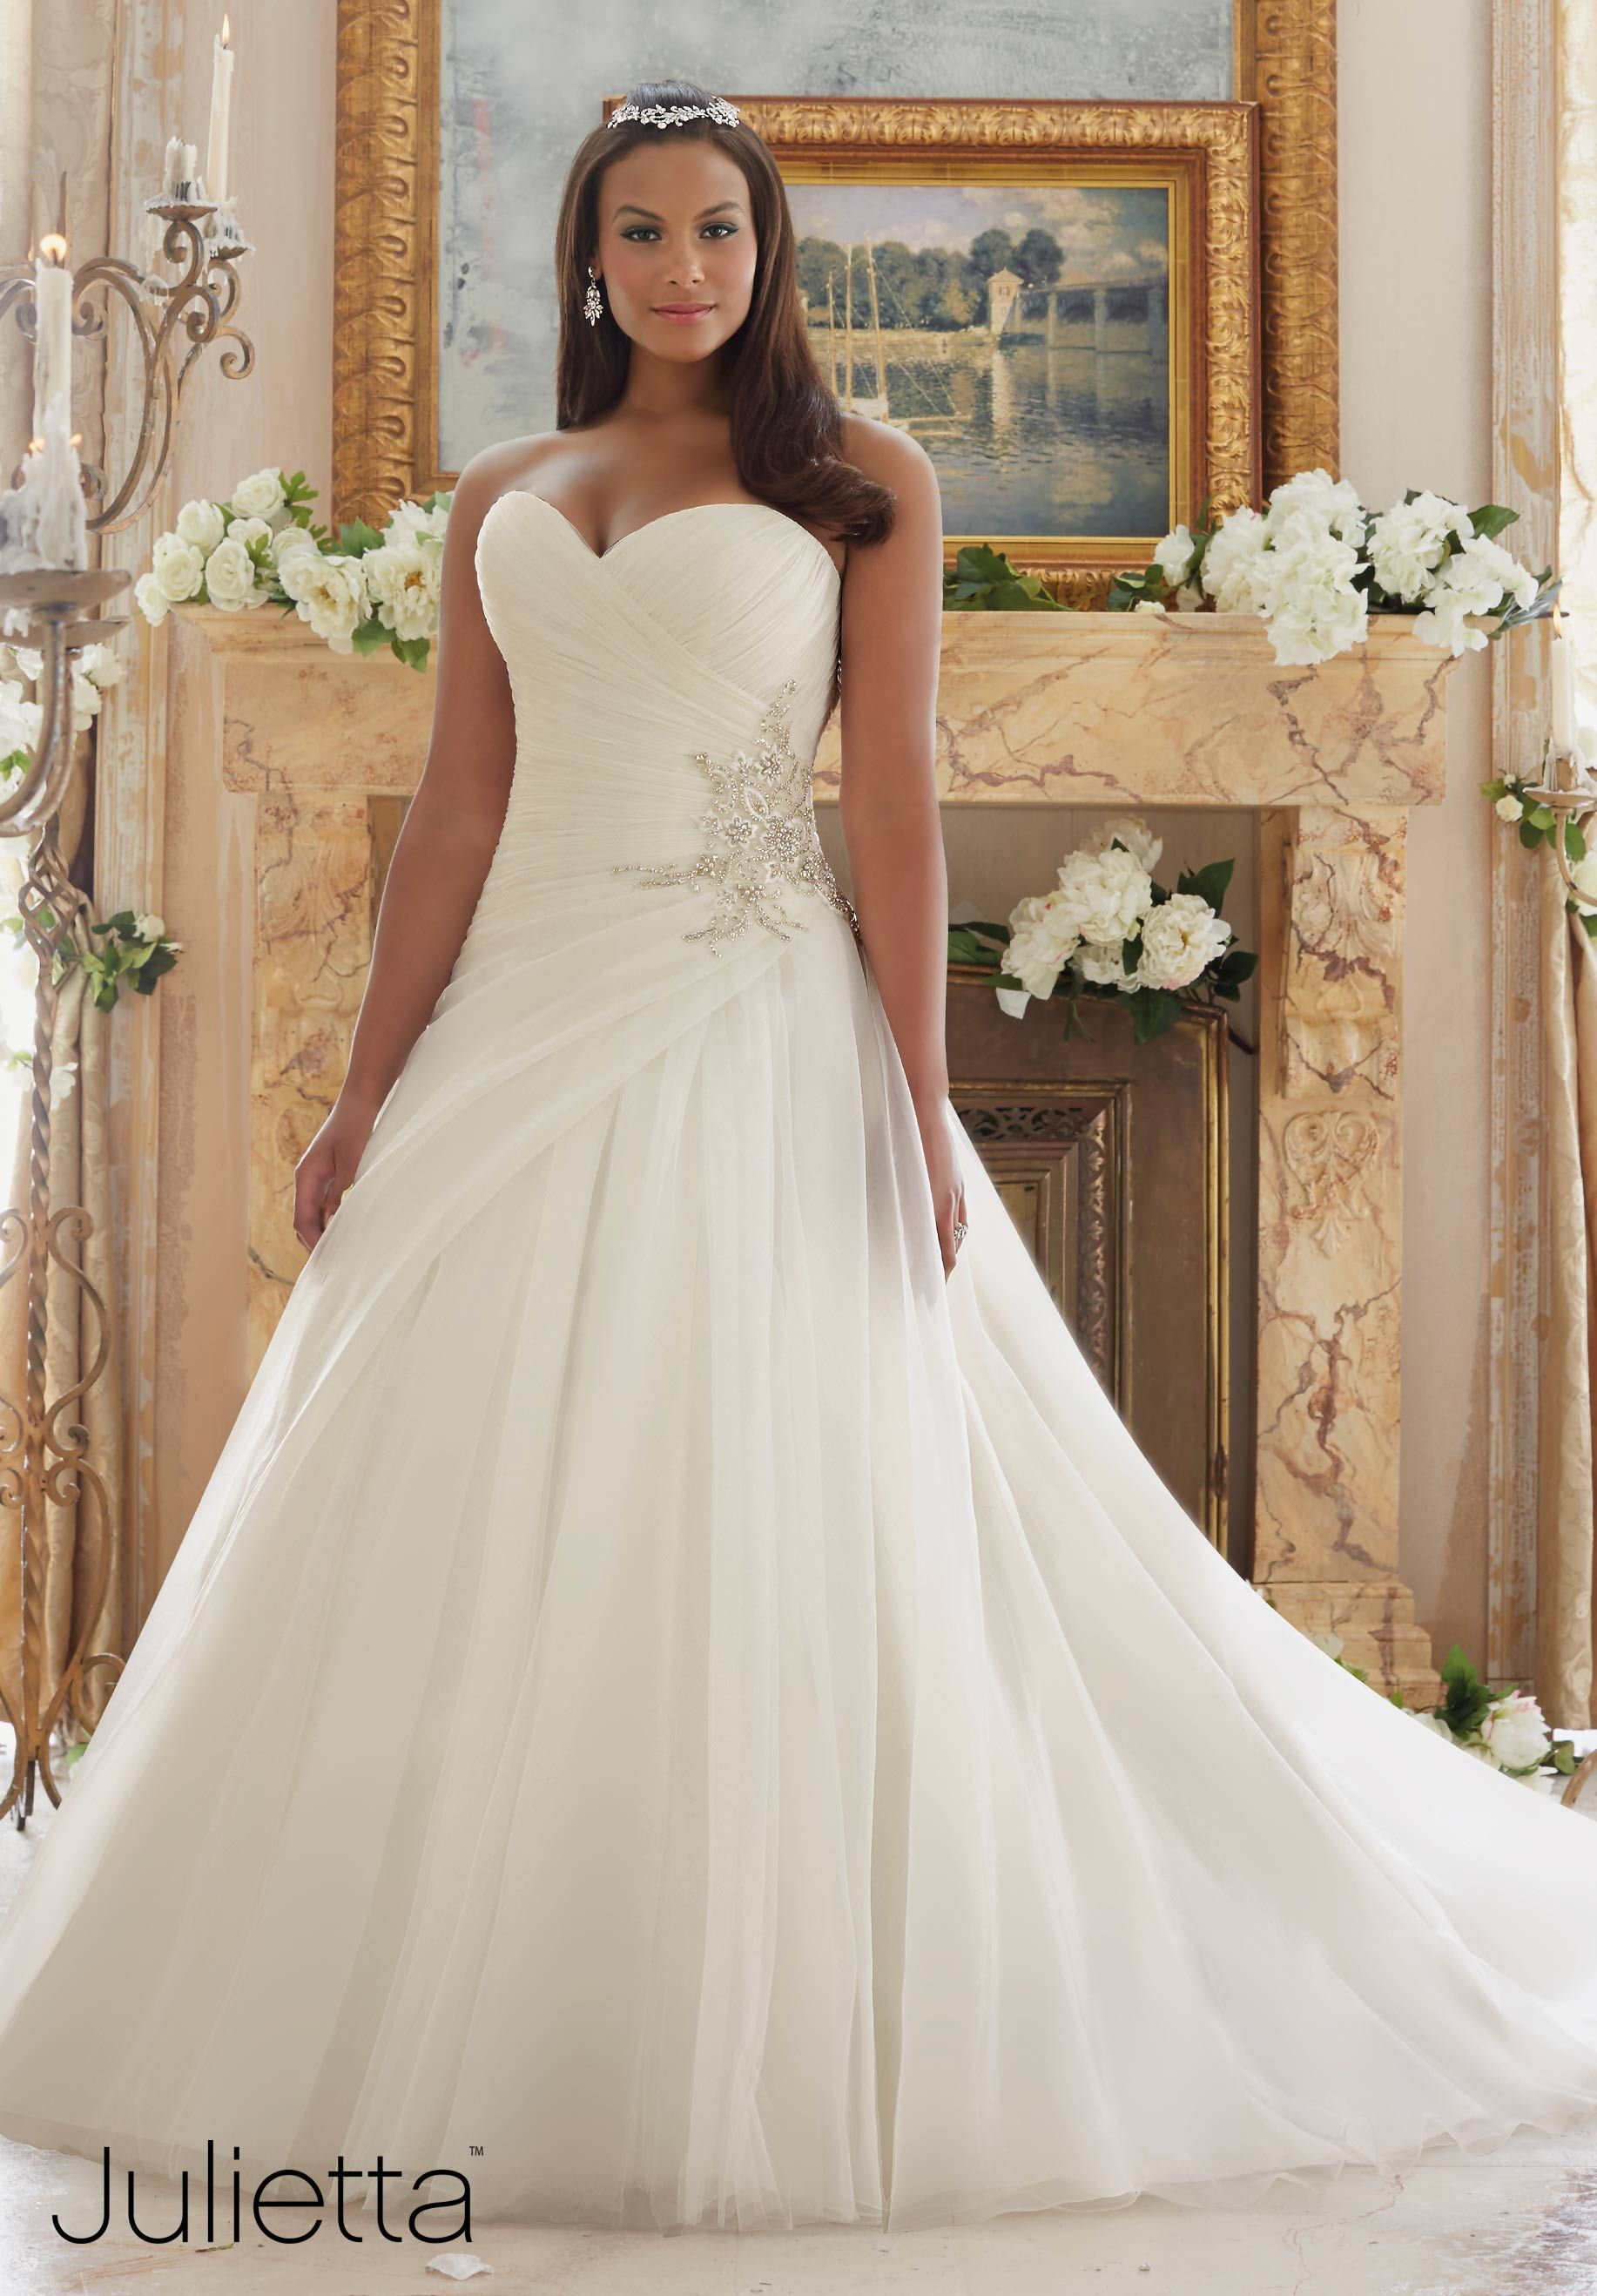 Plus size wedding gowns mori lee julietta collection for Wedding dresses for big busted women